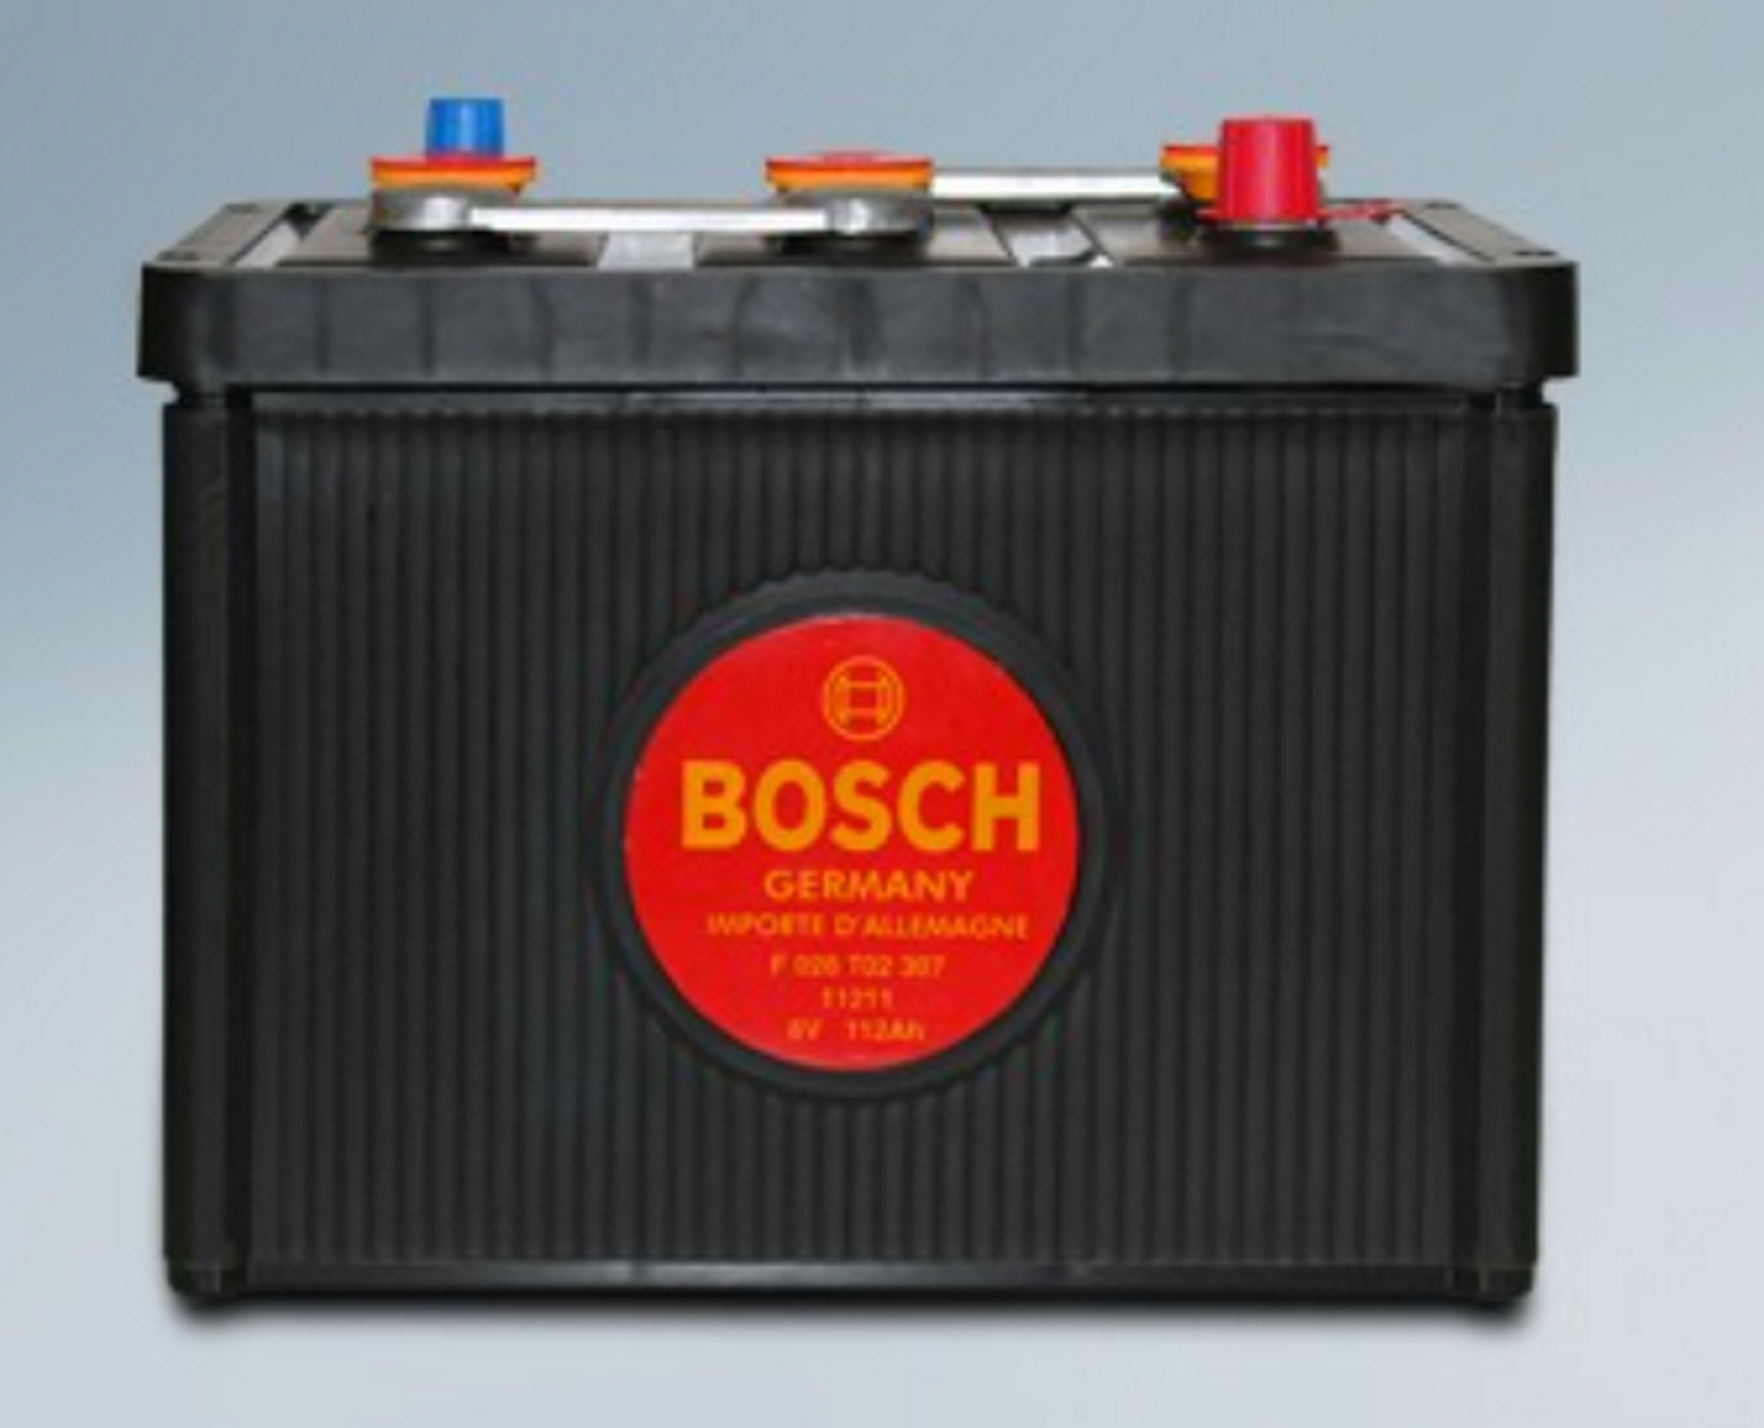 Bosch Classic Battery, could have fit my Mercedes-Benz 219 perfectly